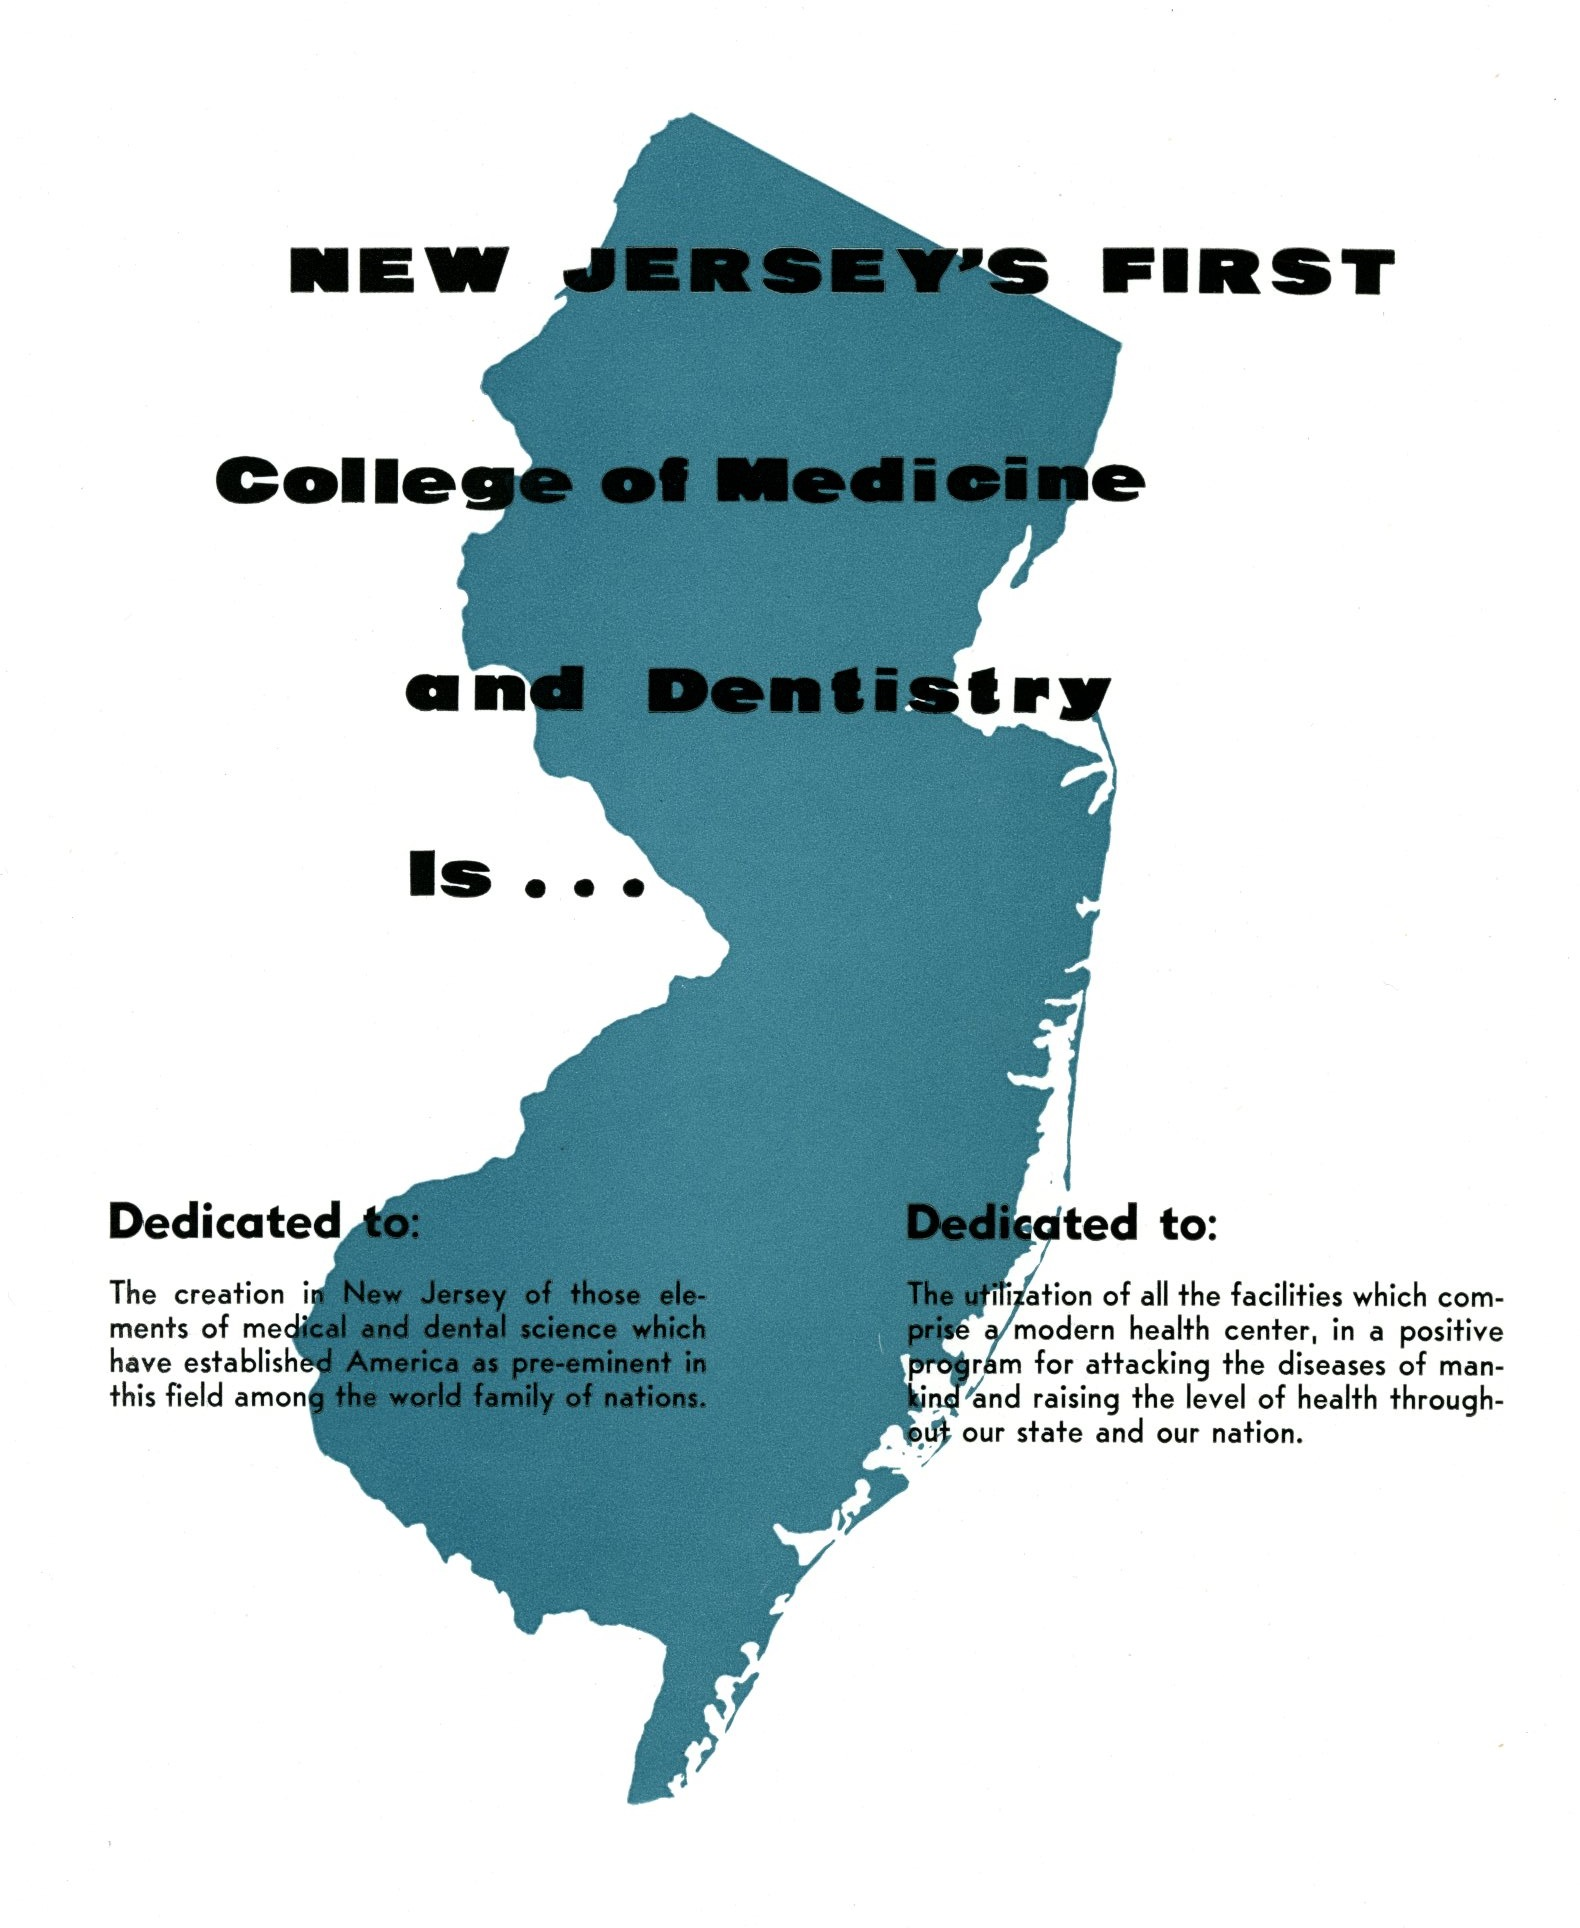 New Jersey's first college of medicine and dentistry